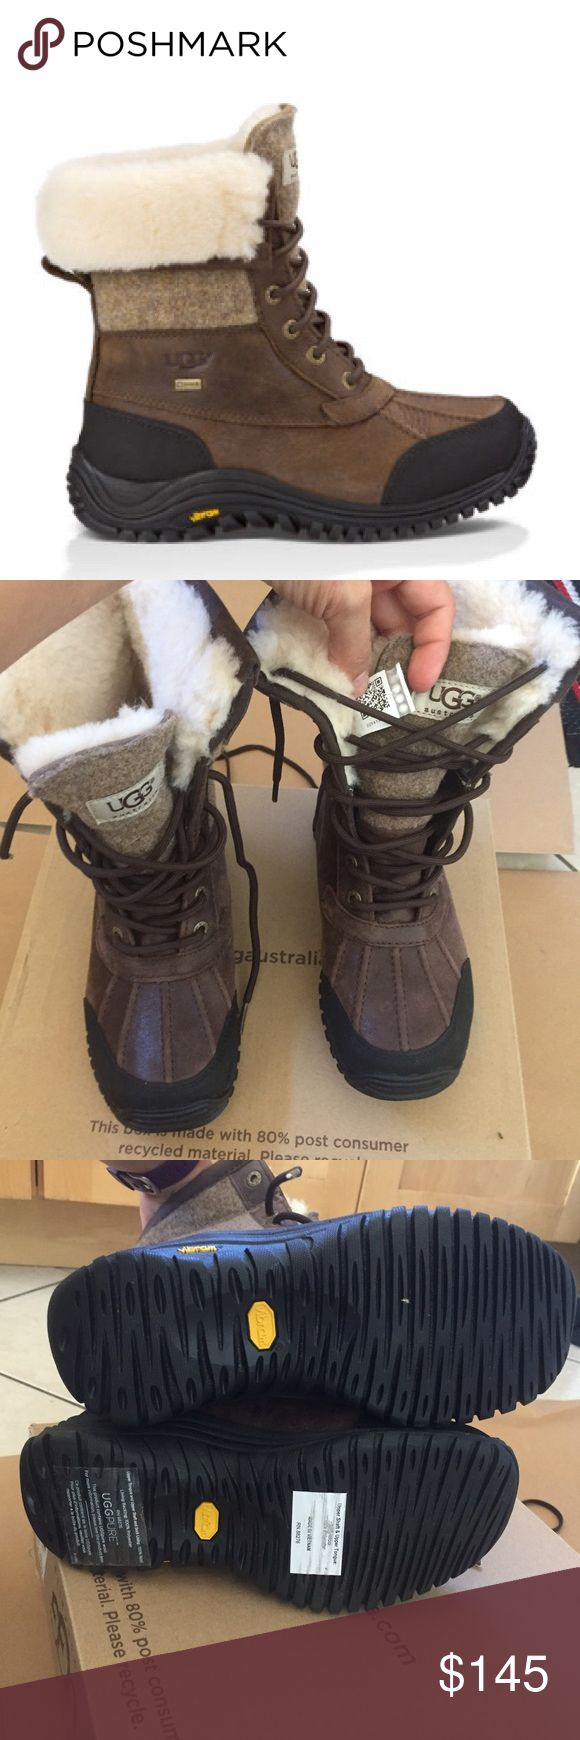 UGG ADIRONDACK II BOOTS Sz 5 new UGG ADIRONDACK II BOOTS Sz 5 new BOX IS MISSING LID 100% AUTHENTIC . Qr reader scannable tag with your smartphone to prove authenticity . Itemcloset#8cin UGG Shoes